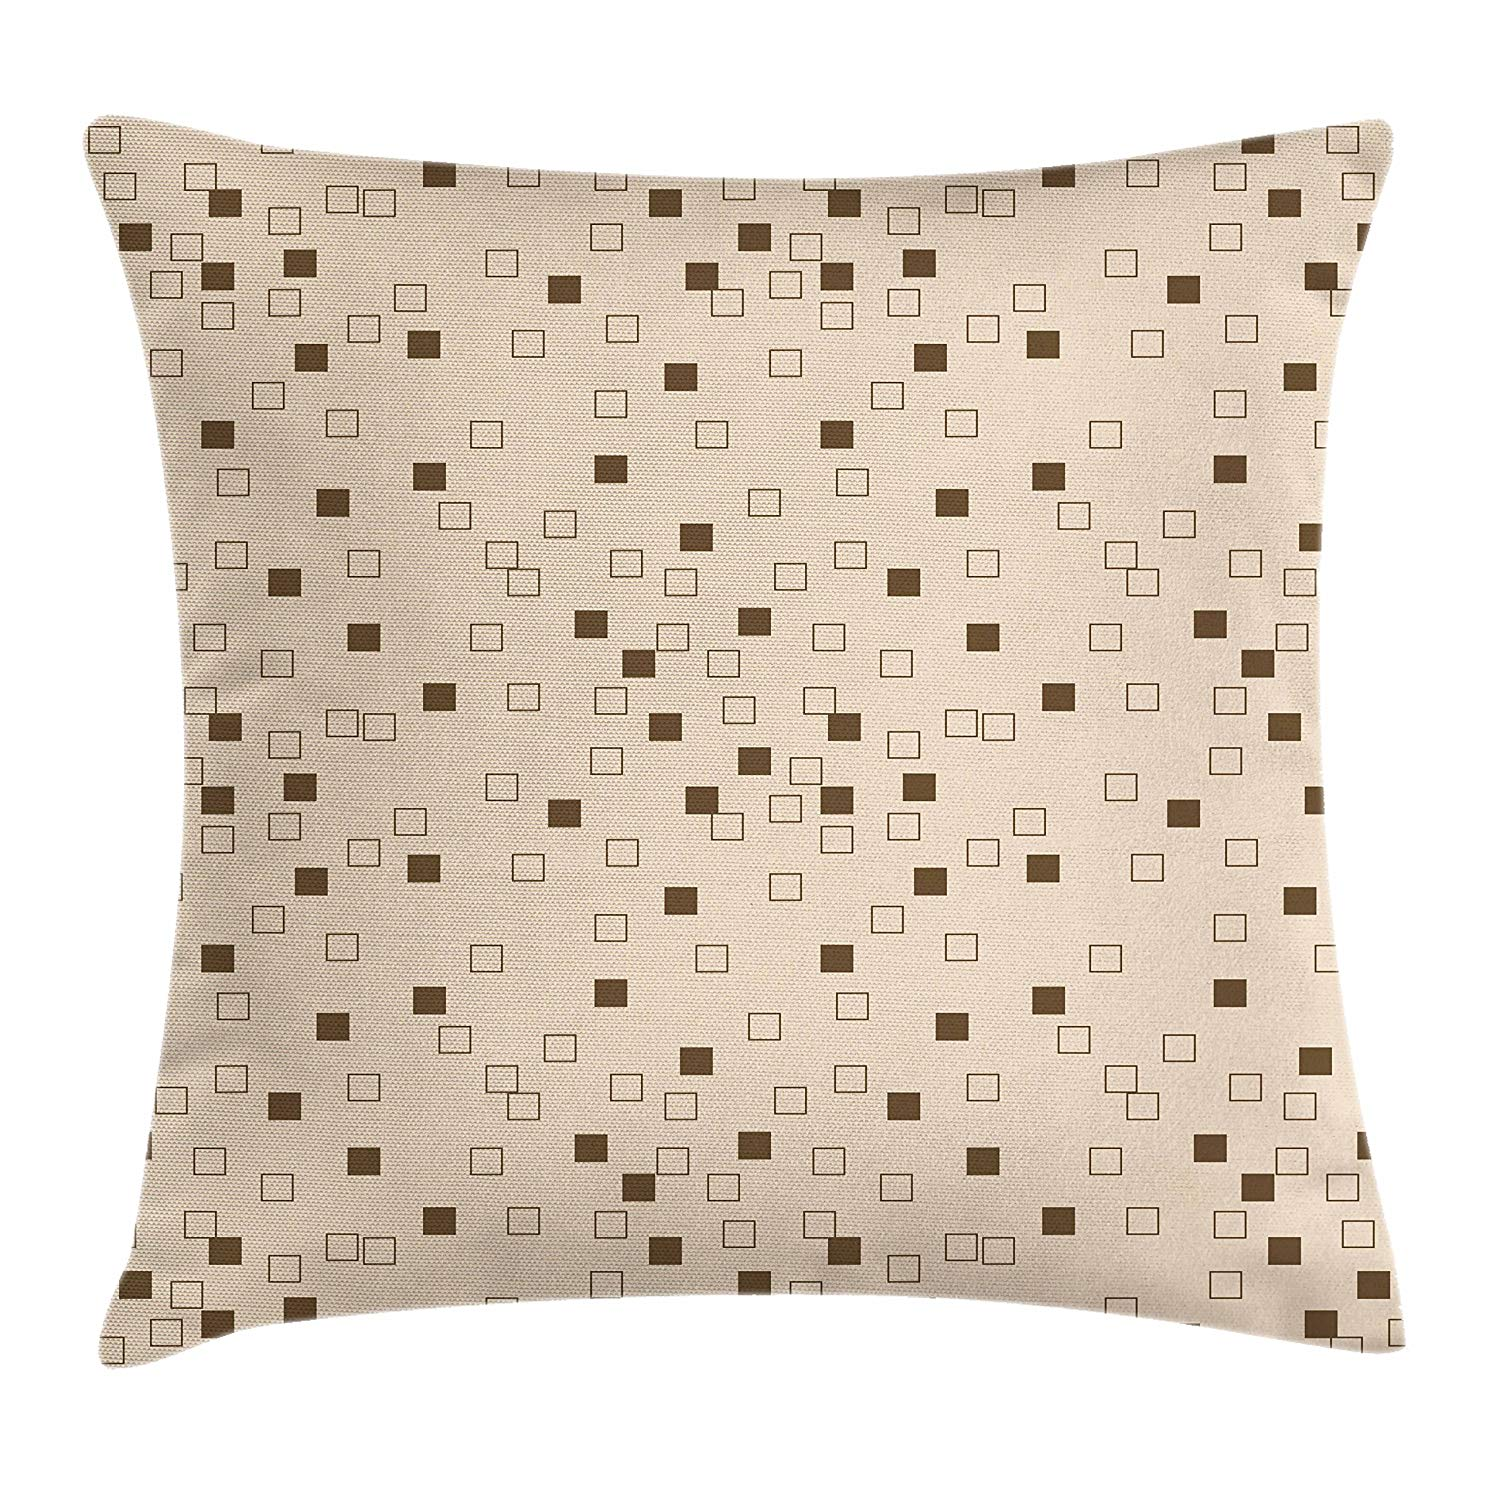 Lunarable Modern Throw Pillow Cushion Cover, Geometrical Composition with Squares Abstract Rhombus Ornamental Artistic Pattern, Decorative Square Accent Pillow Case, 28 X 28 Inches, Beige Brown